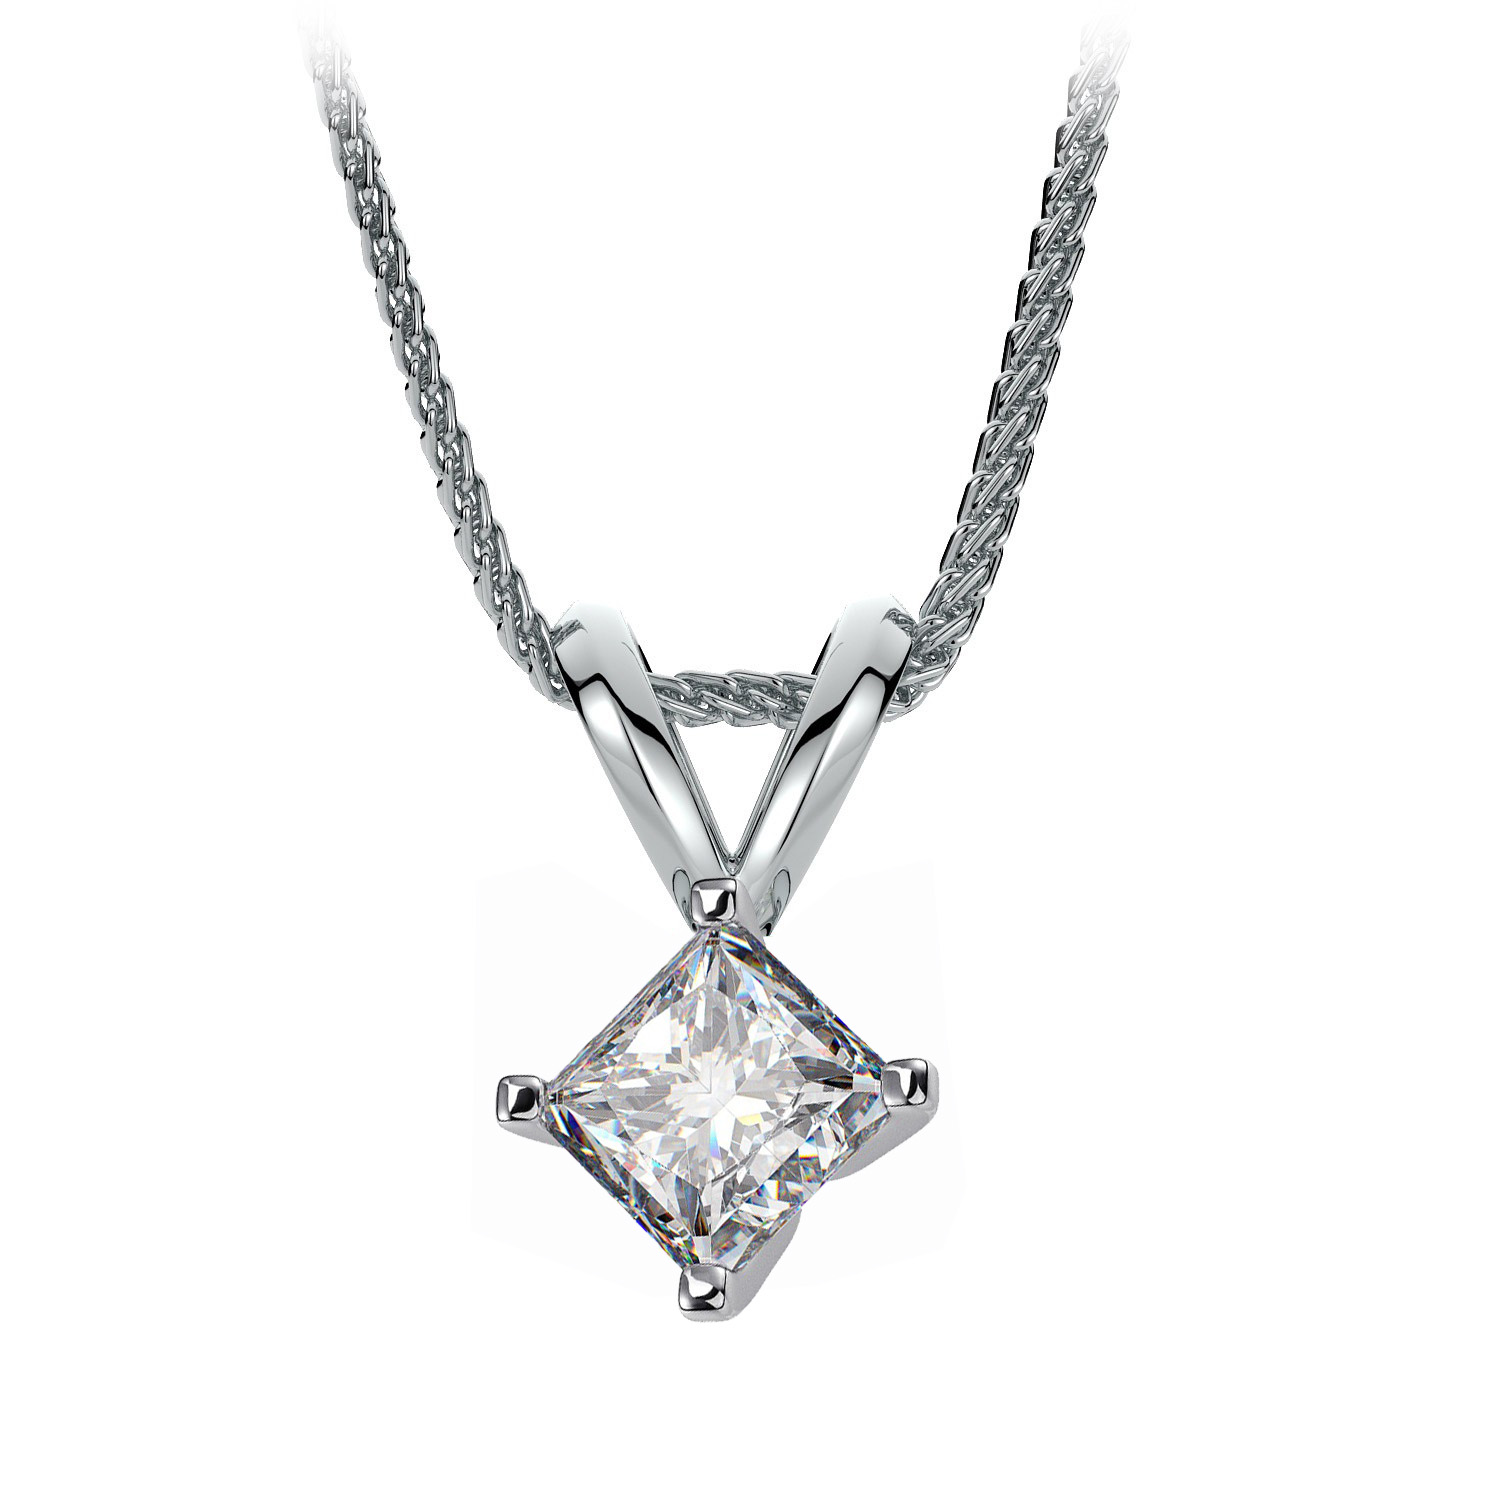 online main pendant diamond johnlewis princess mogul solitaire buymogul cut gold white necklace rsp pdp at